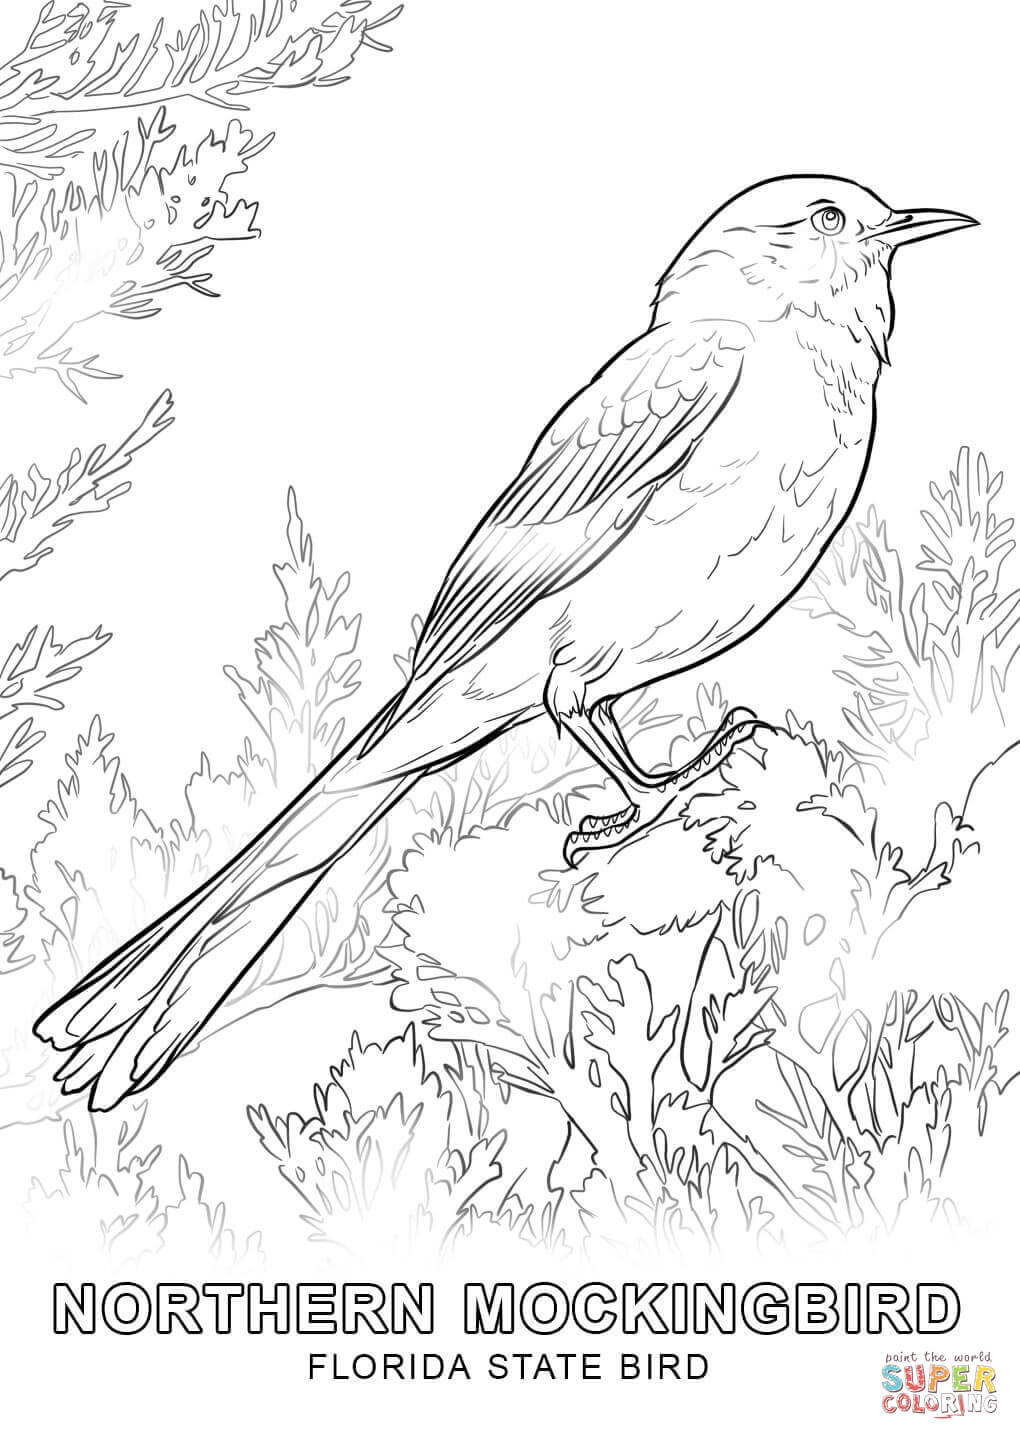 Animal Coloring Books for Adults Capture Terrific Wildlife ... | 1440x1020